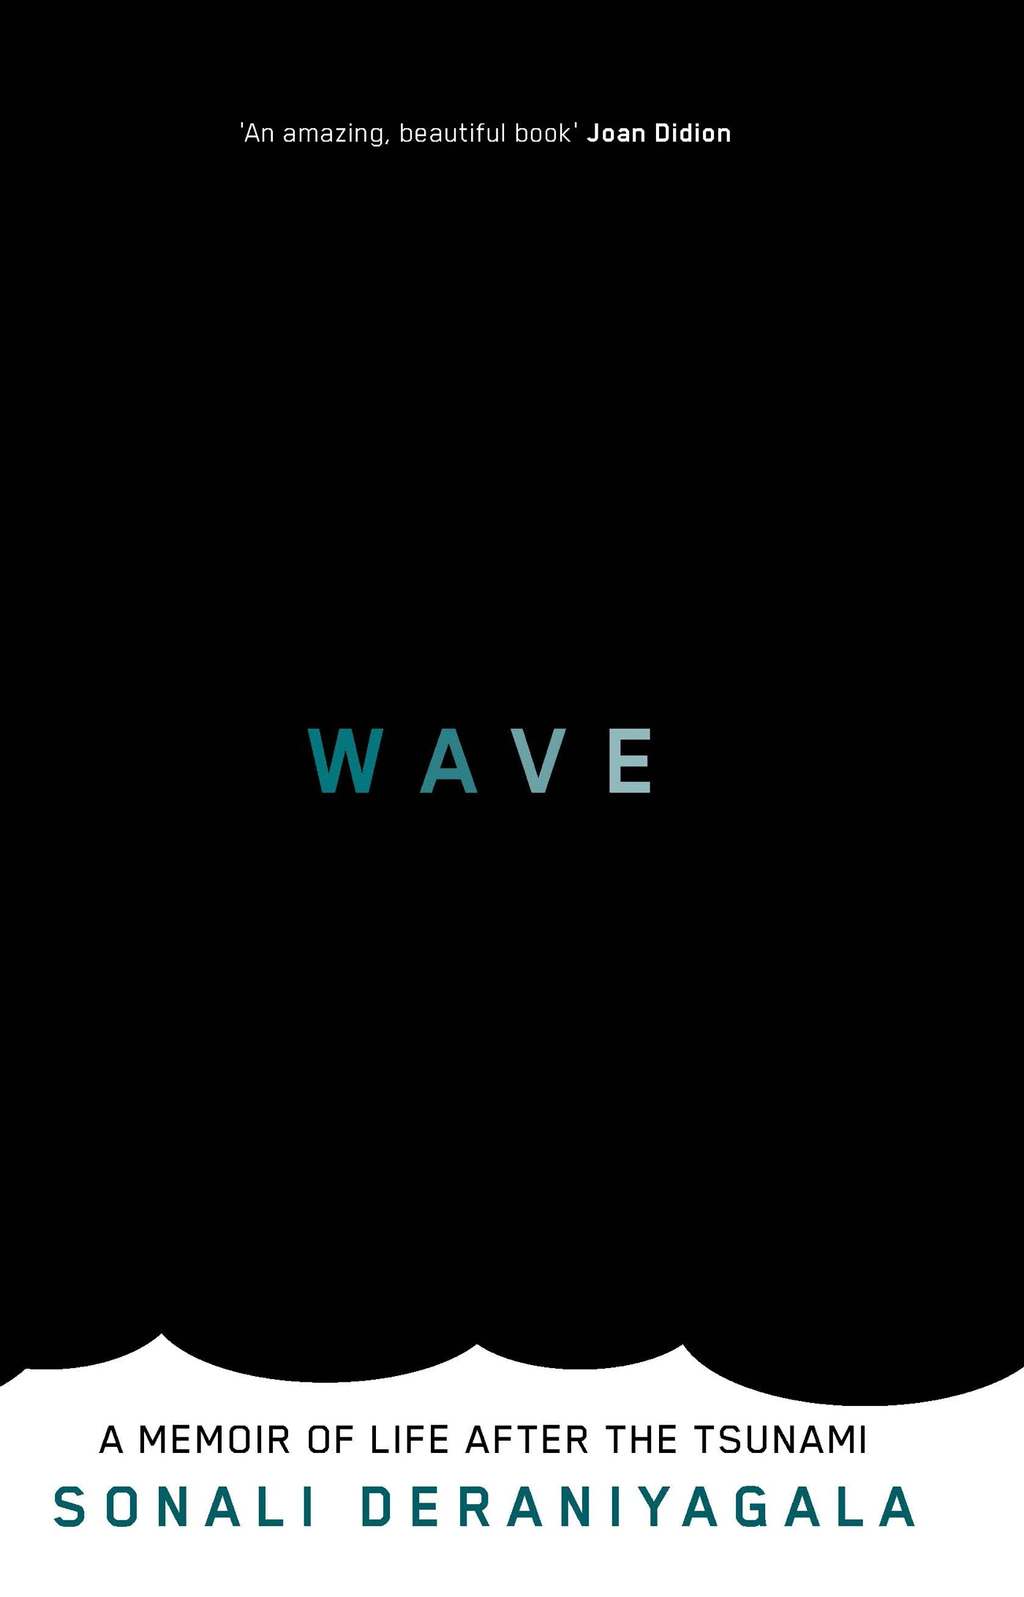 Wave Life and Memories after the Tsunami